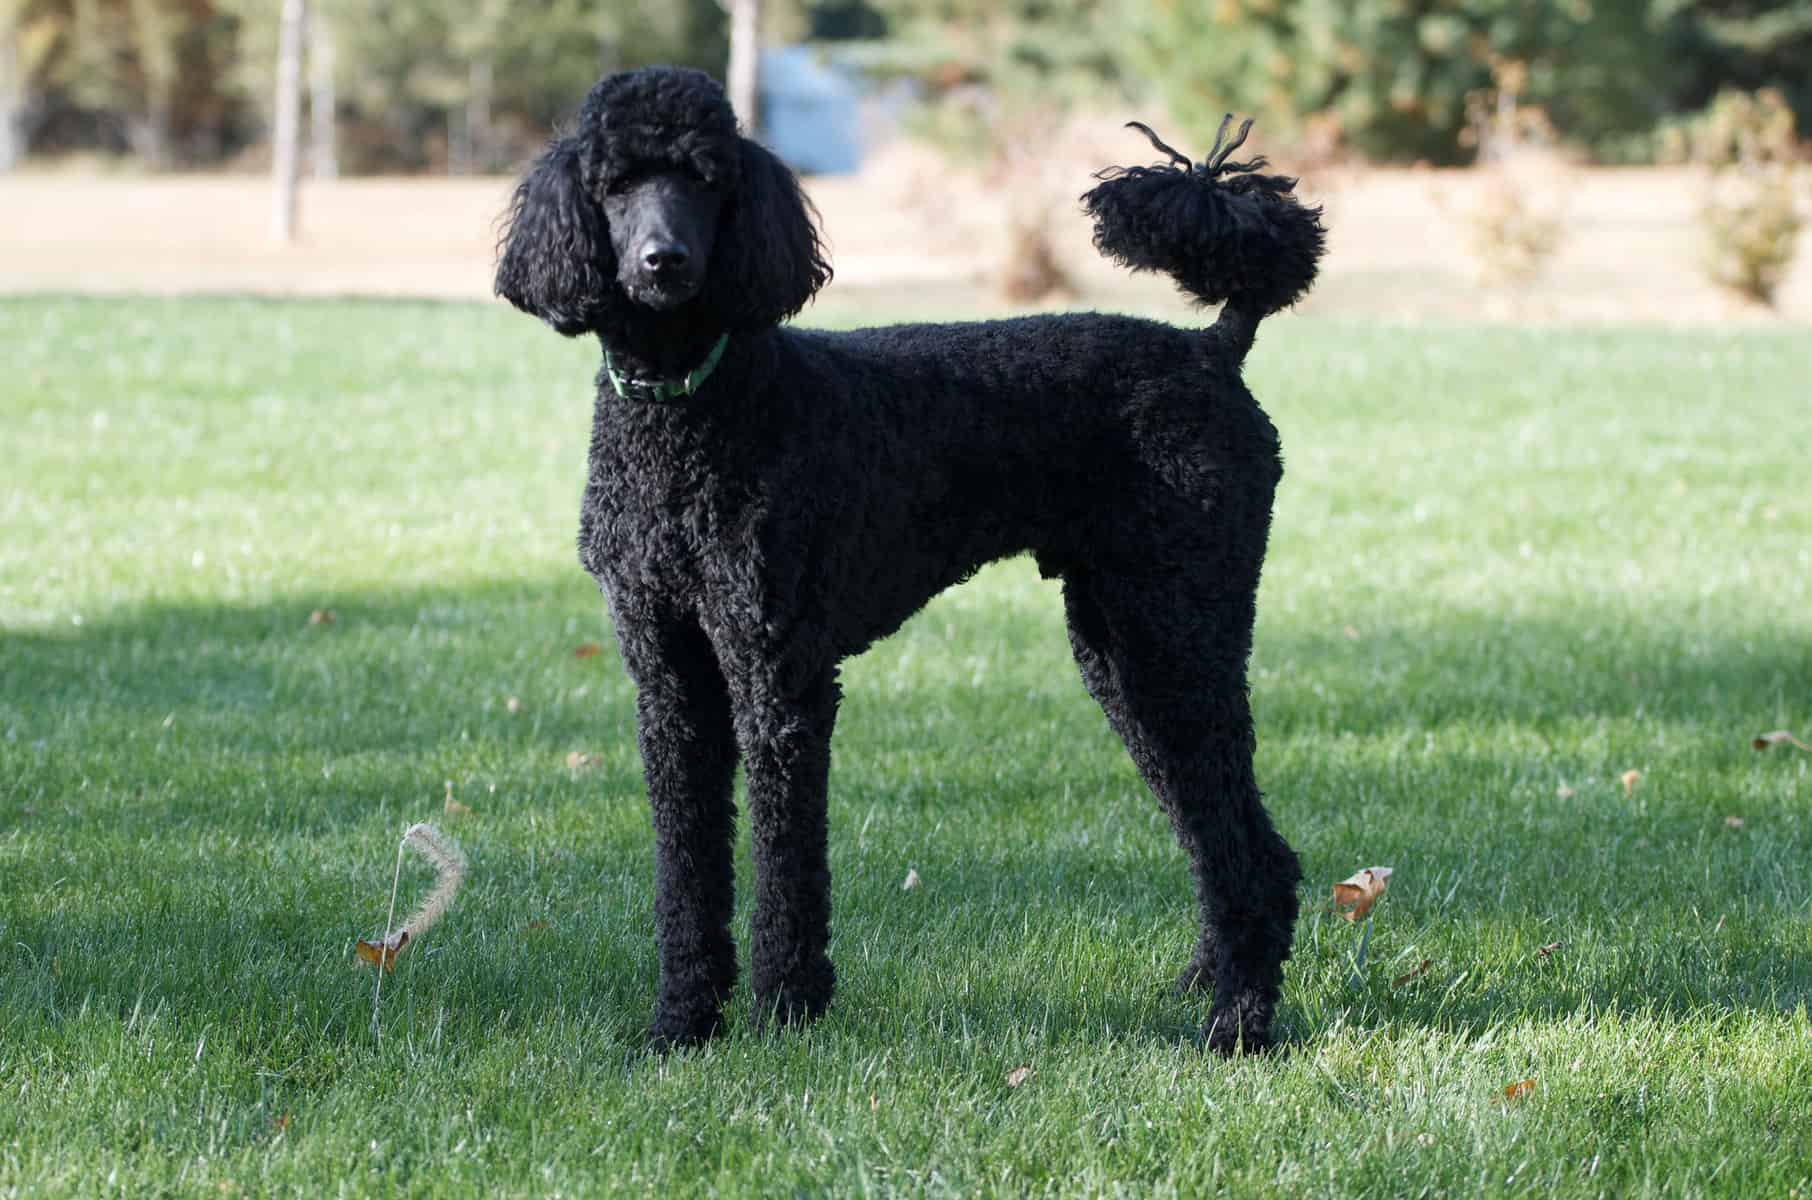 A black Standard Poodle standing on the grass